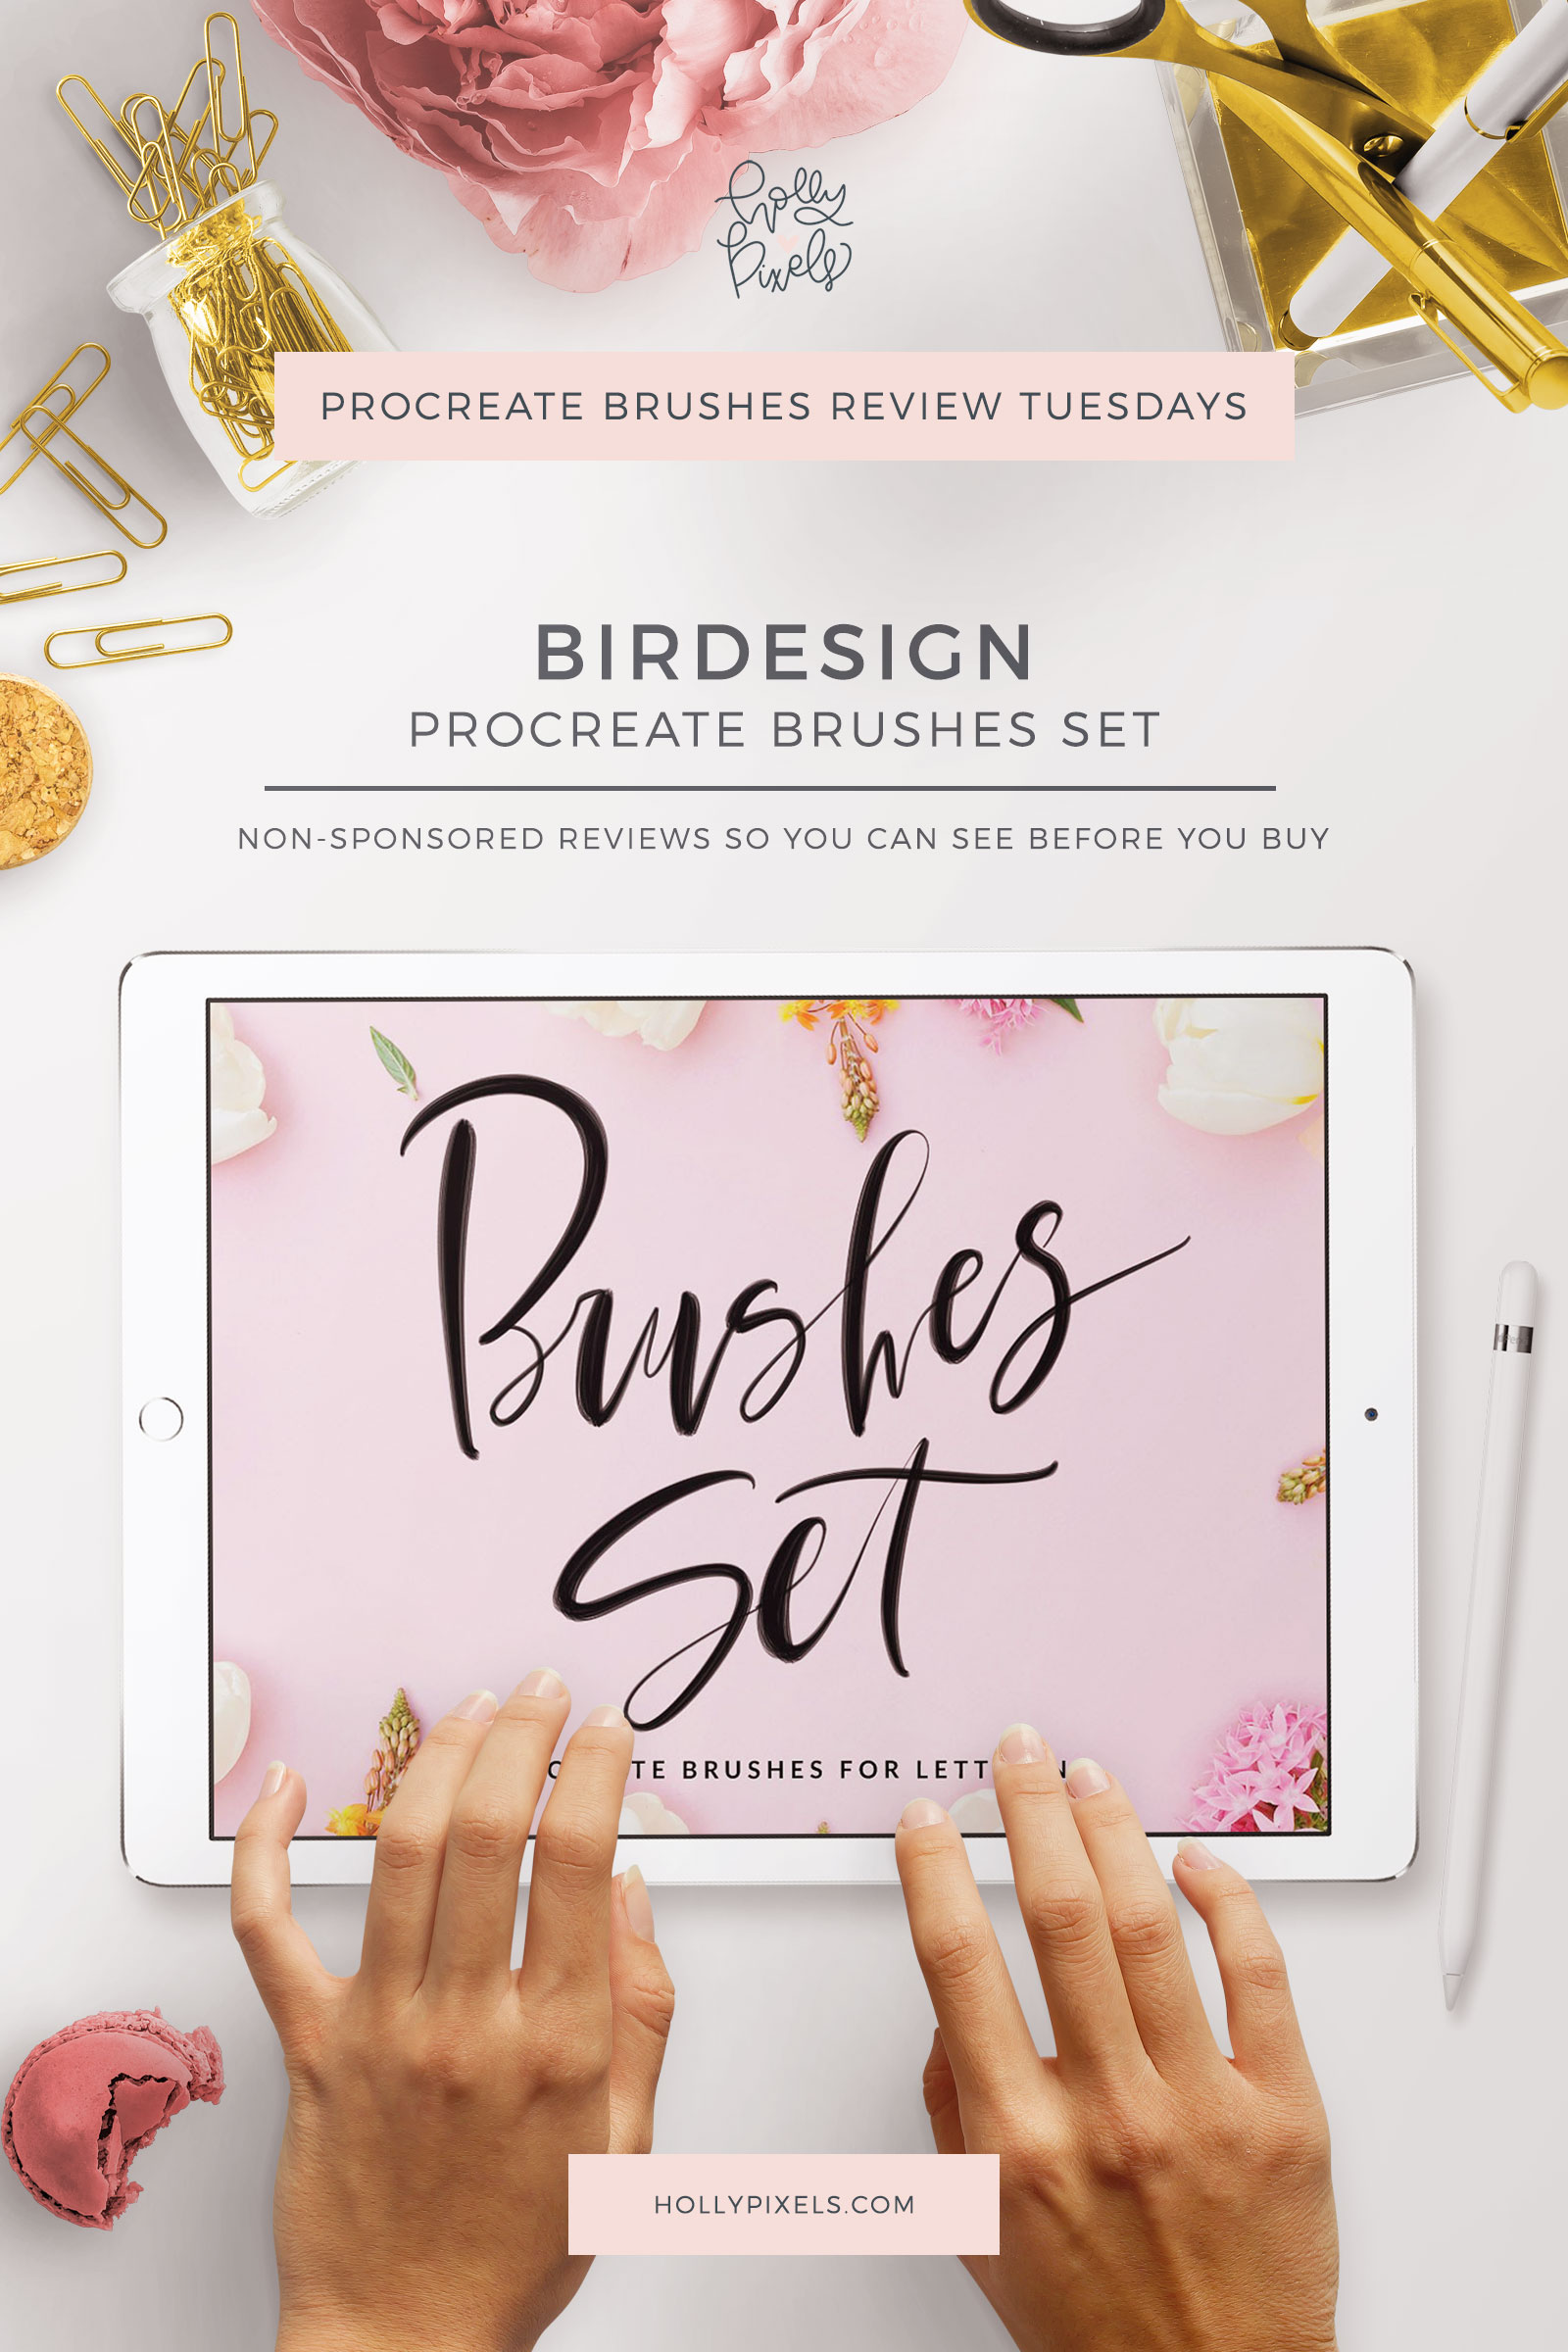 This week's Procreate brushes review features a more traditional lettering set of Procreate Brushes by Birdesign that be purchased at Creative Market.